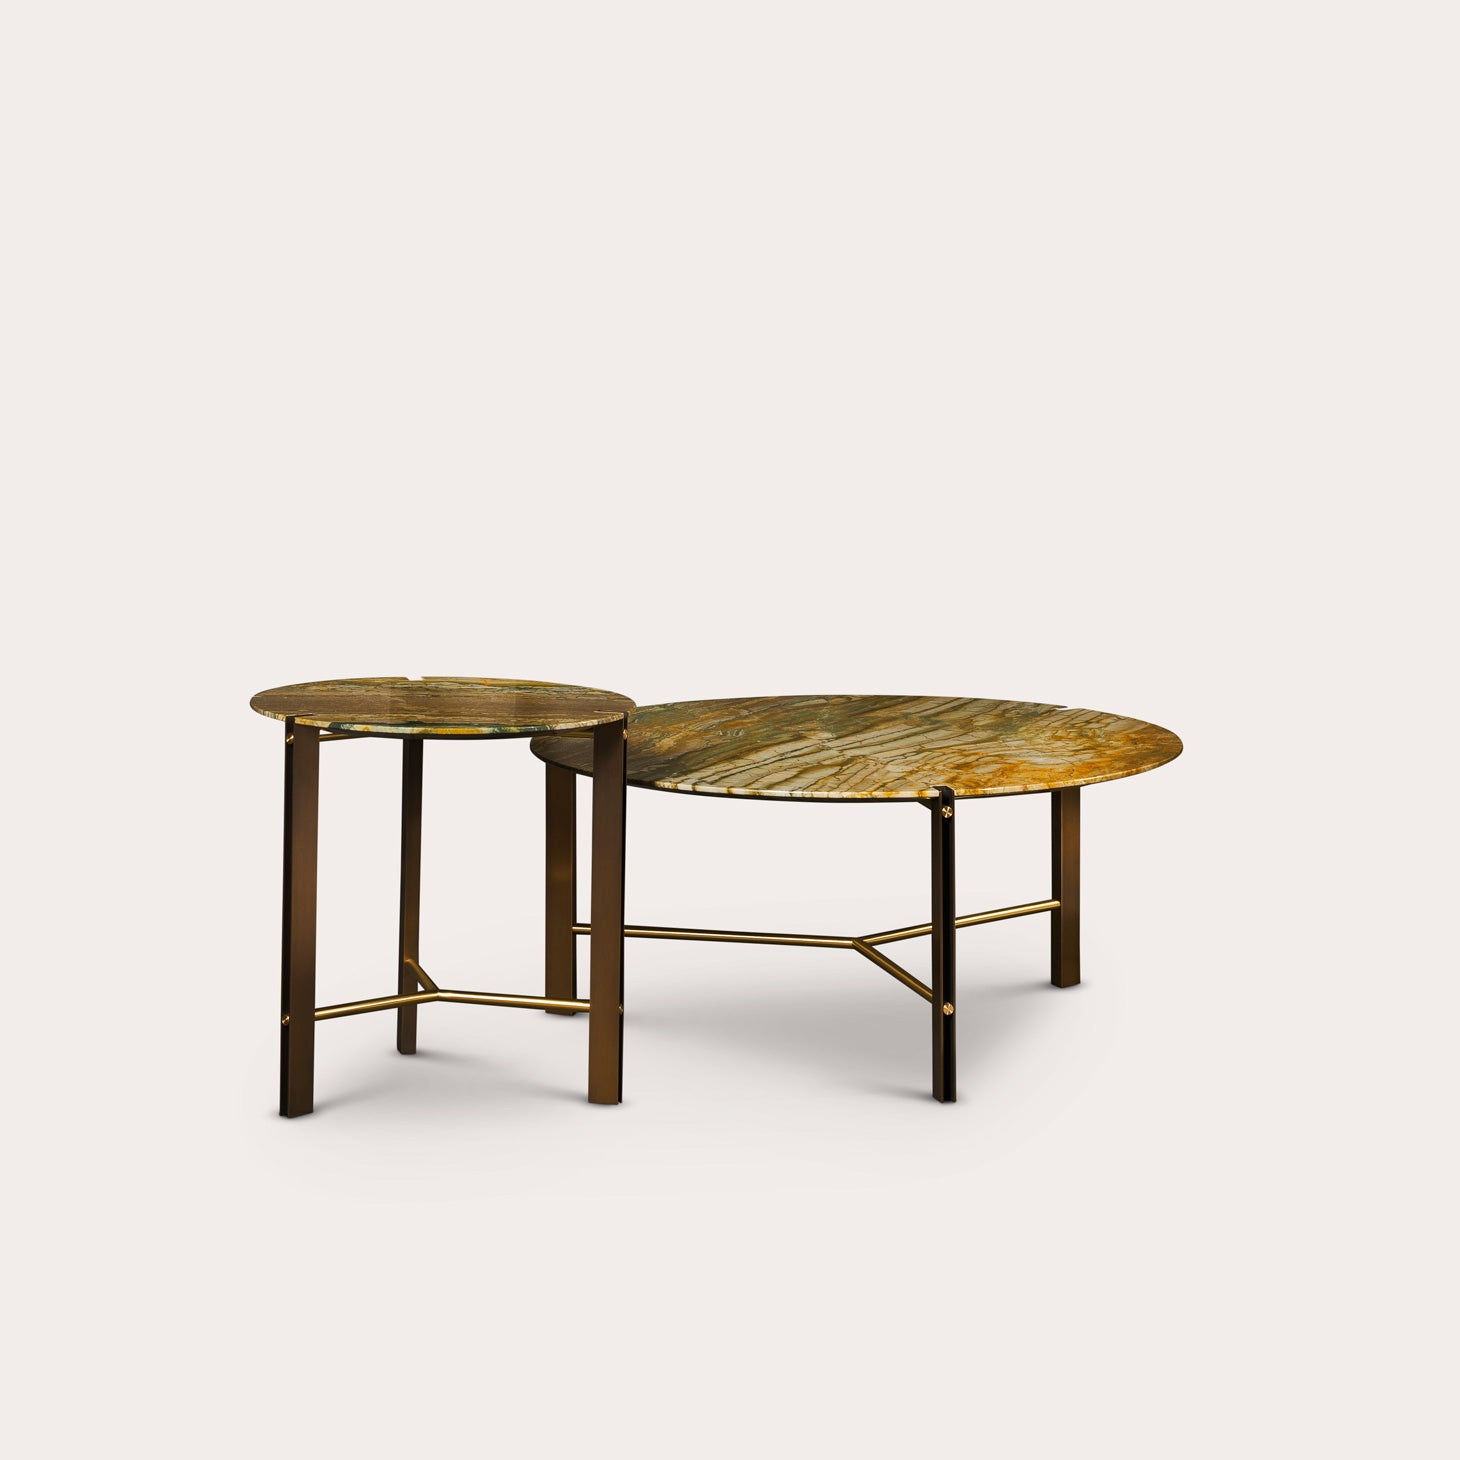 TUNIS Coffee Table Tables Bruno Moinard Designer Furniture Sku: 773-230-10061